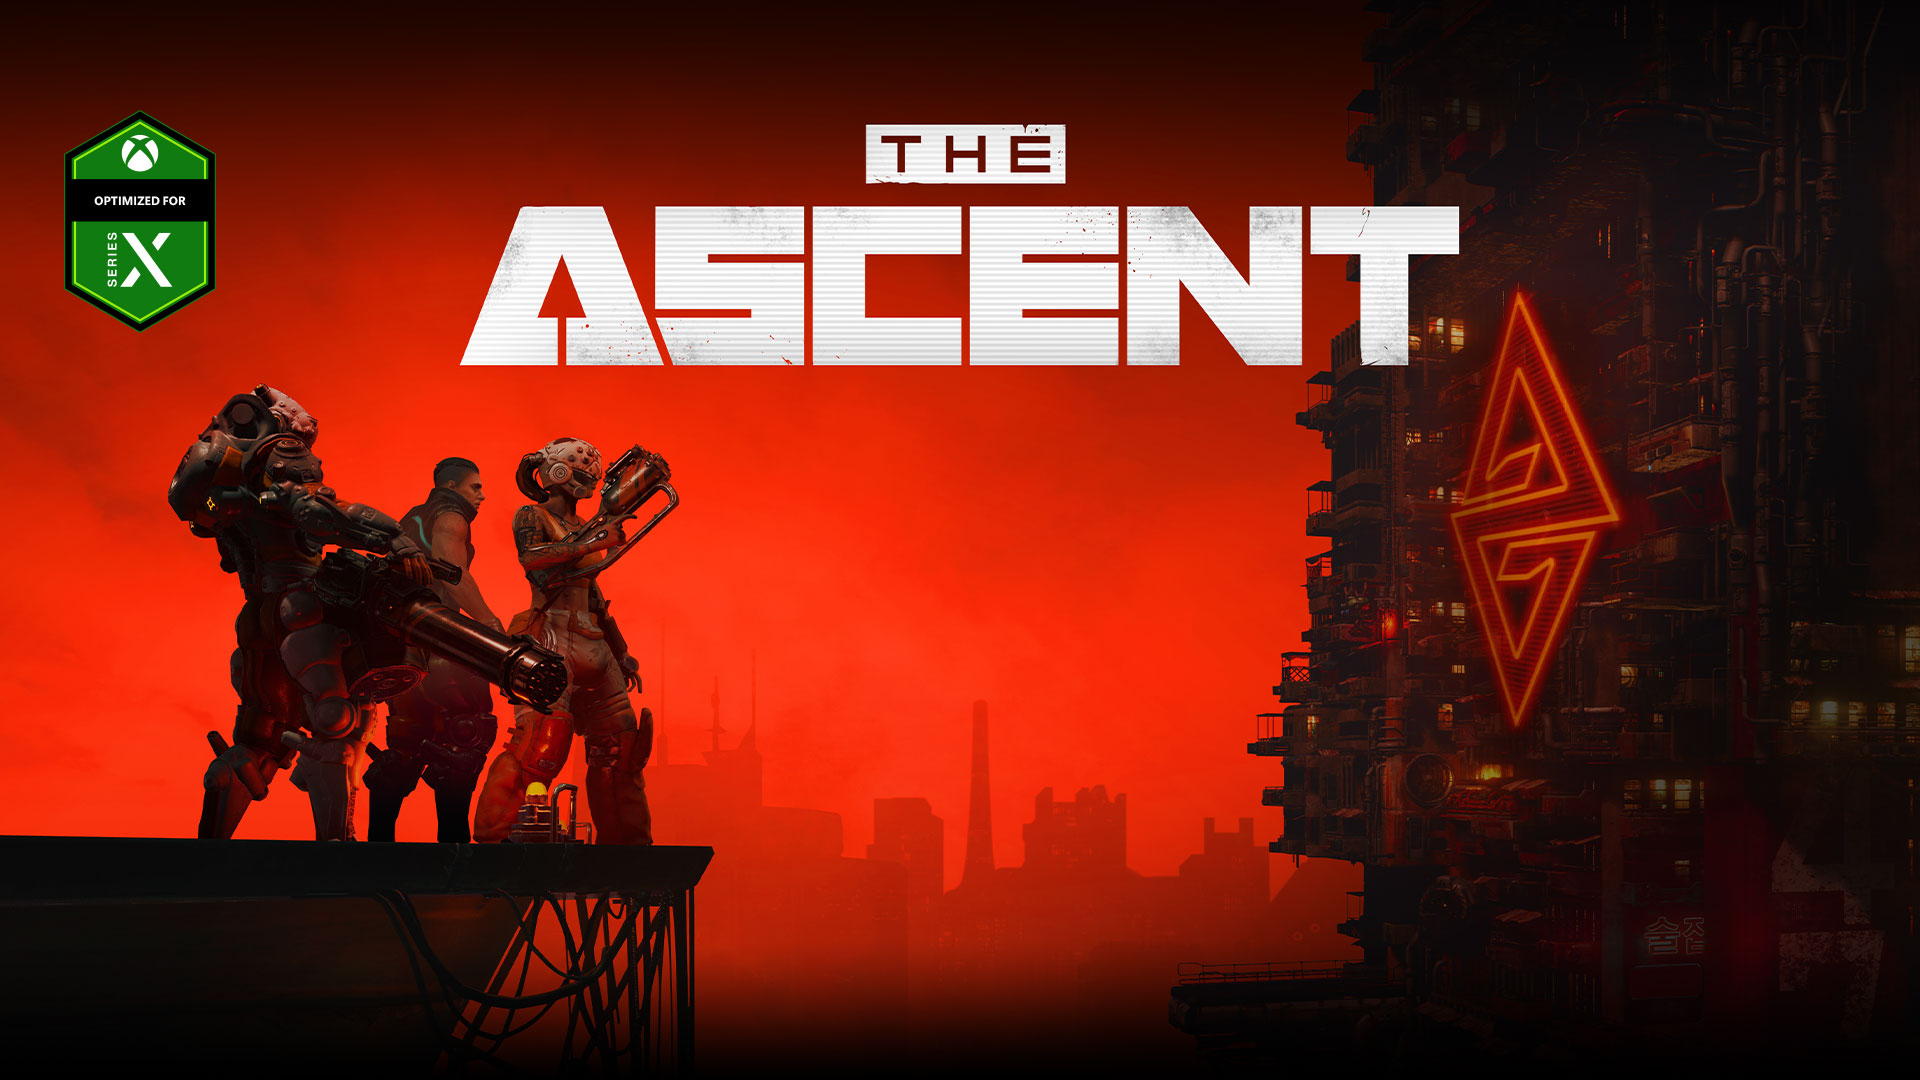 The Ascent, Optimized for Xbox Series X, Three characters stand on a platform overlooking a large cyberpunk style industrial building